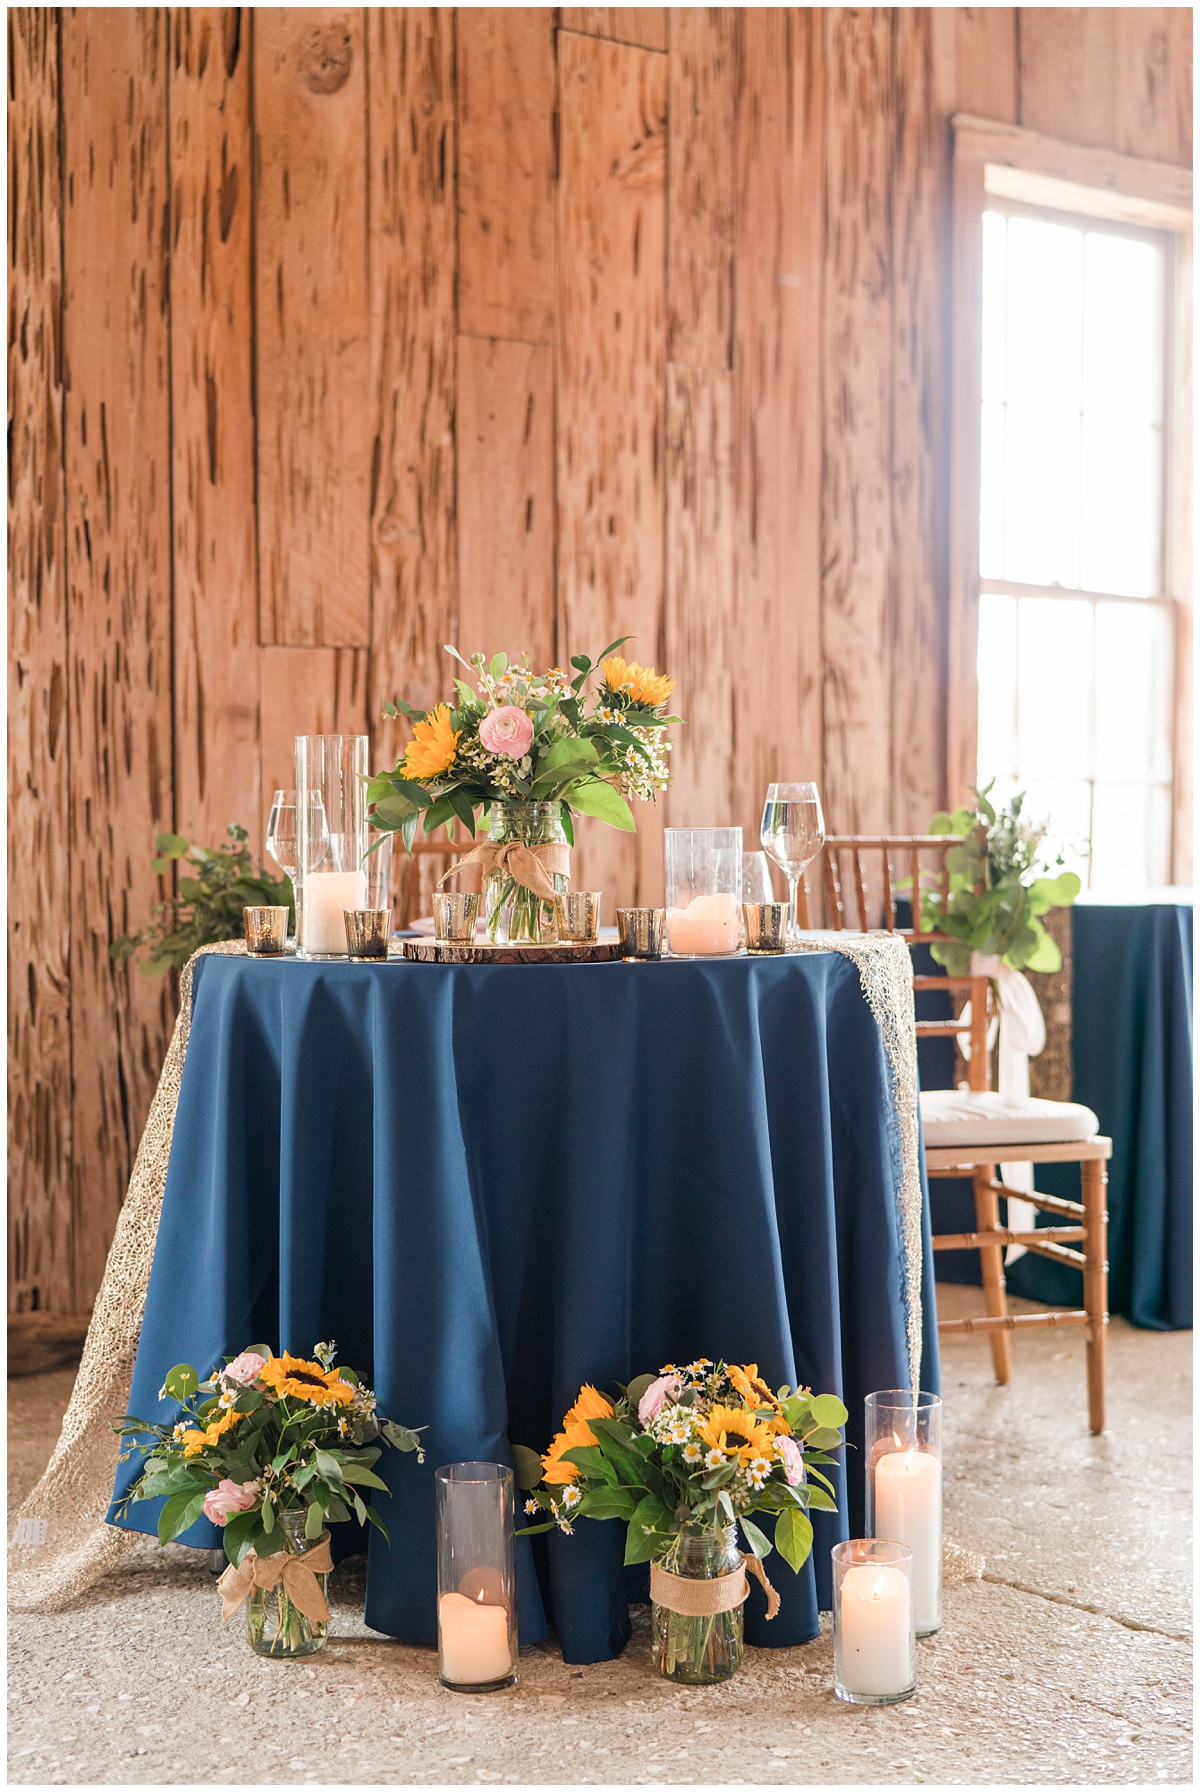 sweetheart table with sunflower centerpieces